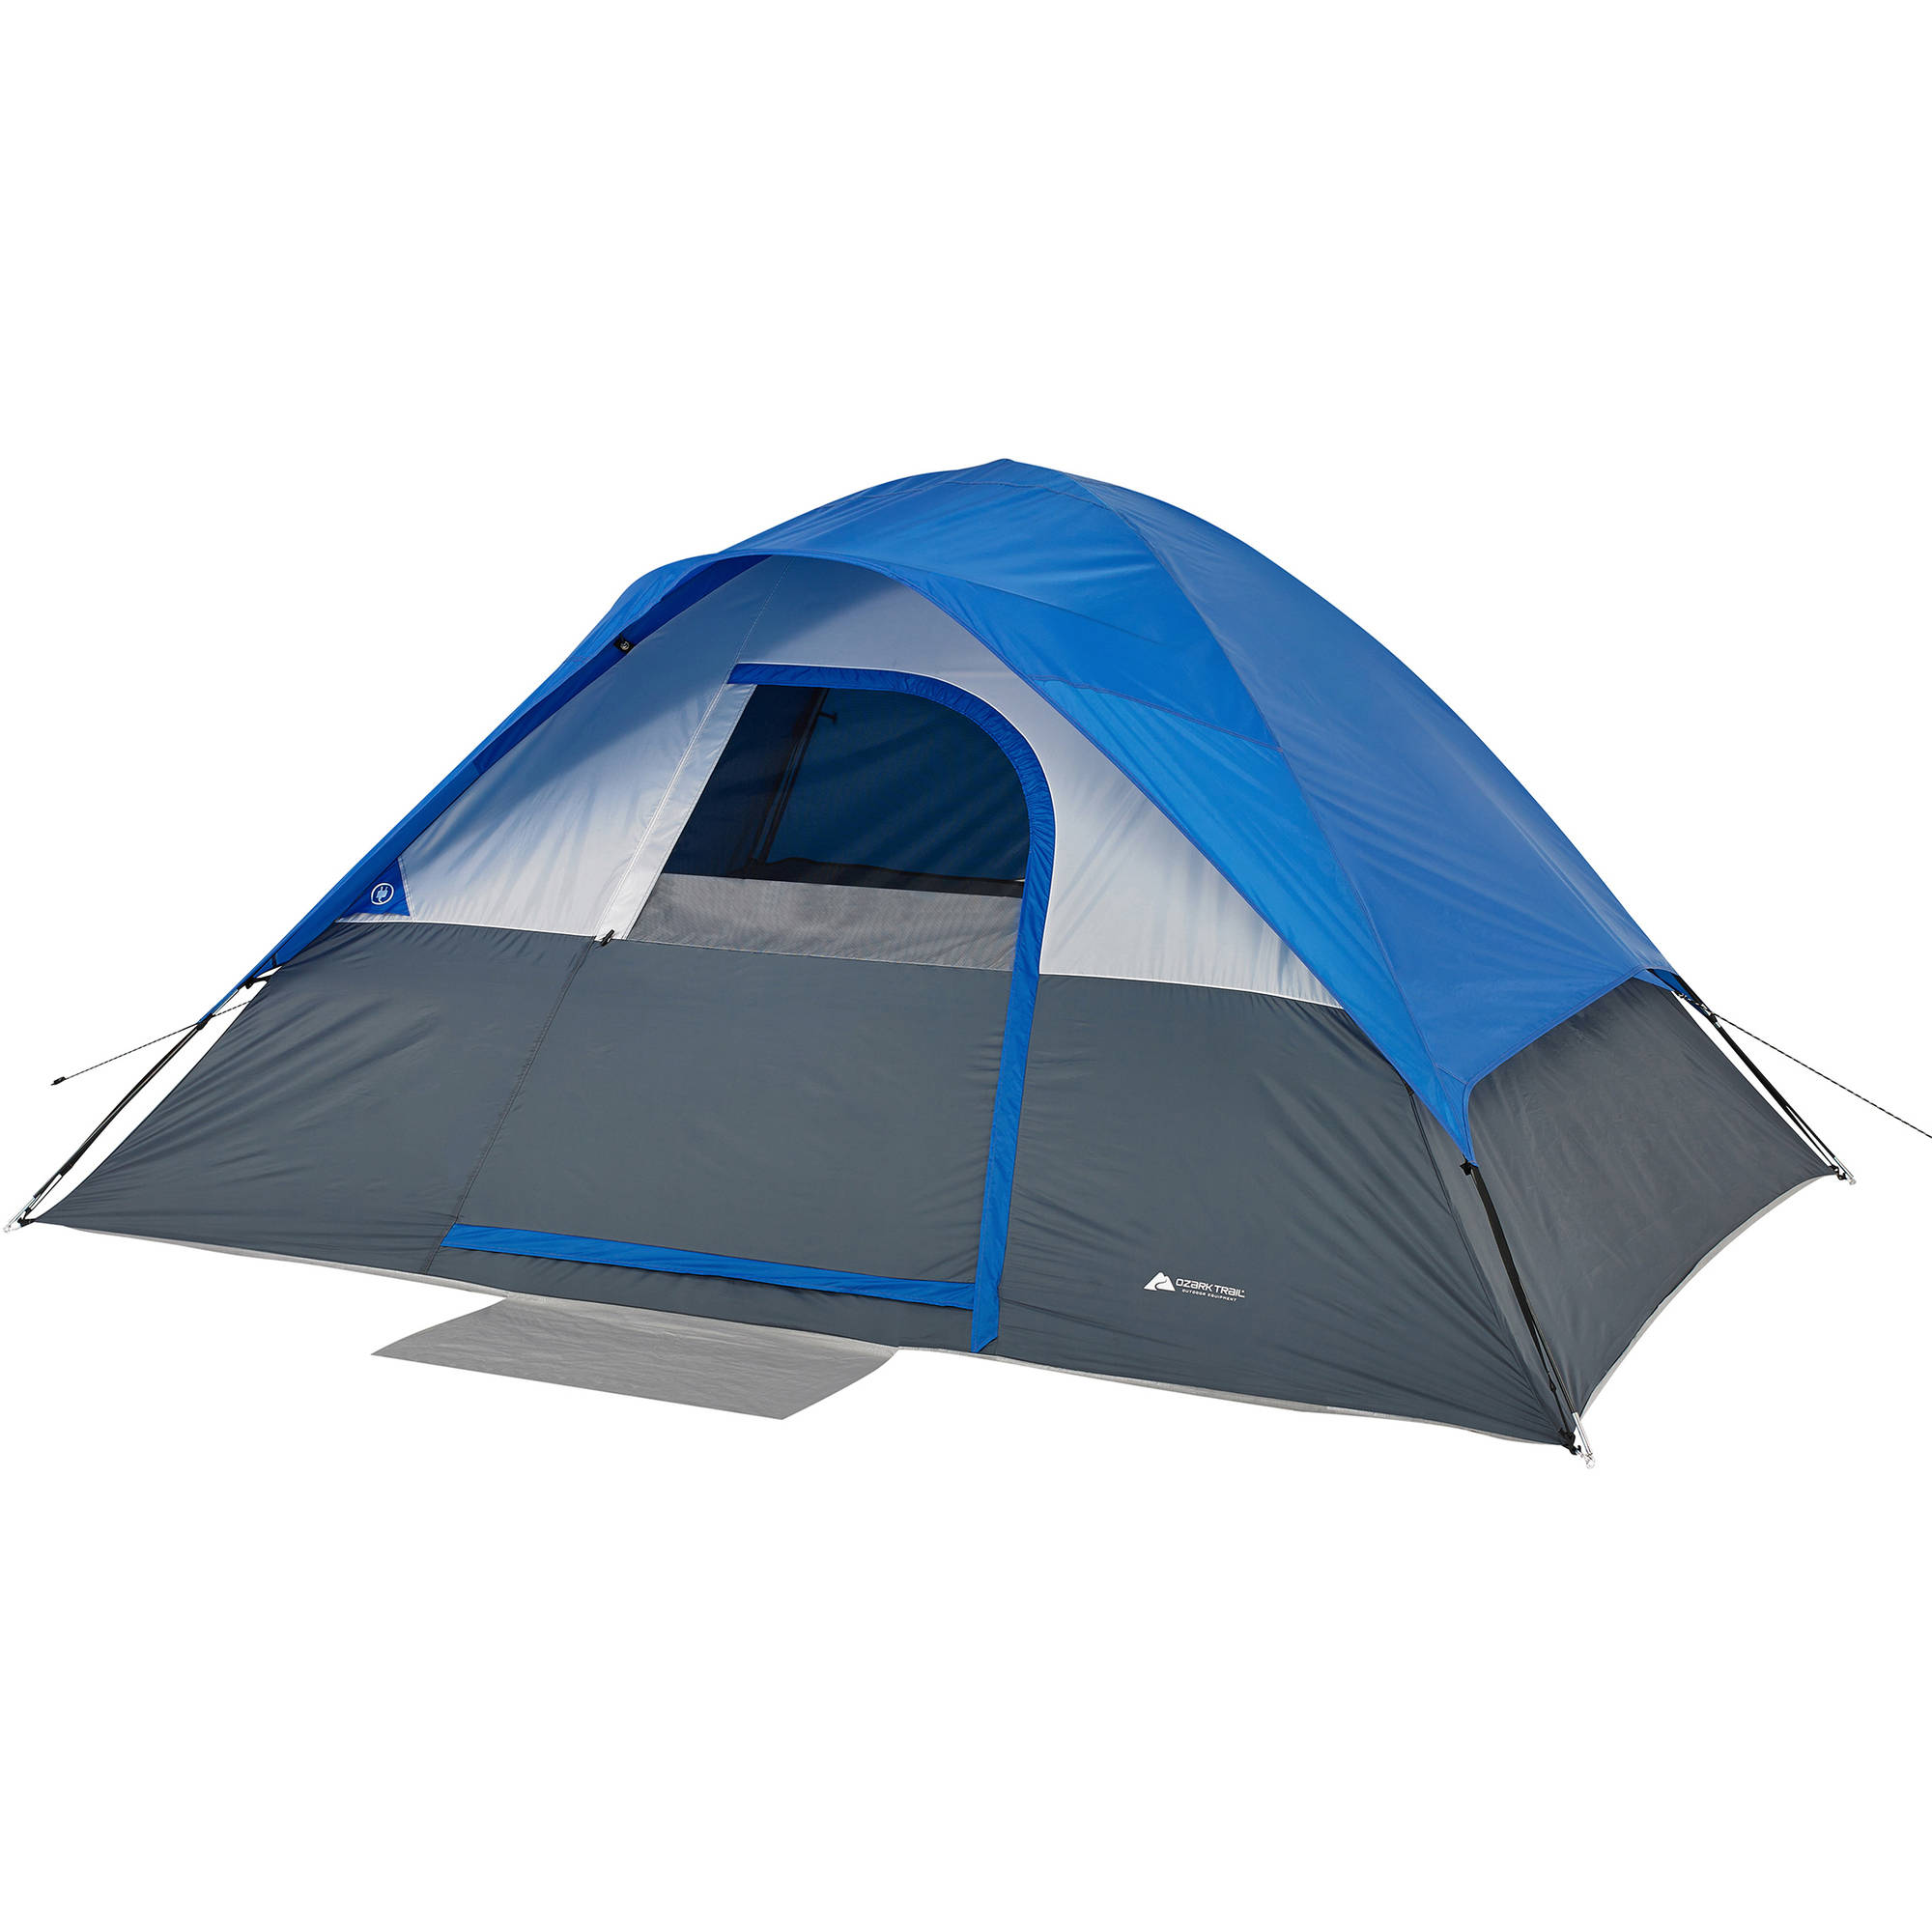 Ozark Trail 5-Person Dome Tent  sc 1 st  Walmart.com & Ozark Trail 5-Person Dome Tent - Walmart.com